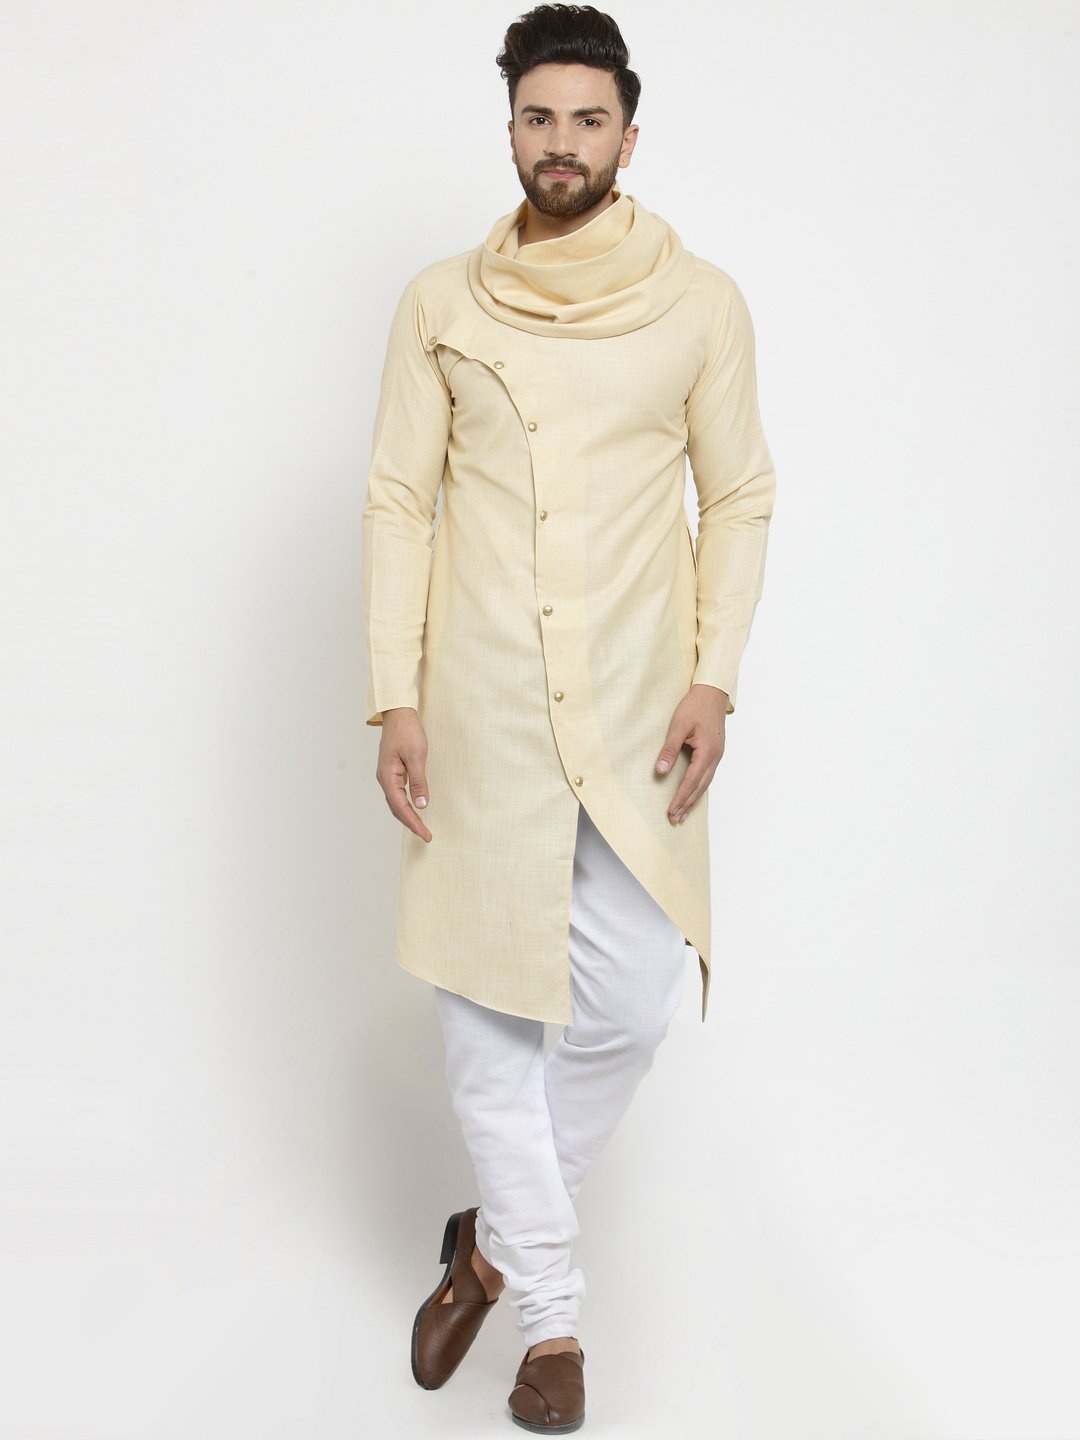 Designer Beige Kurta and Pajama Set for men by Treemoda